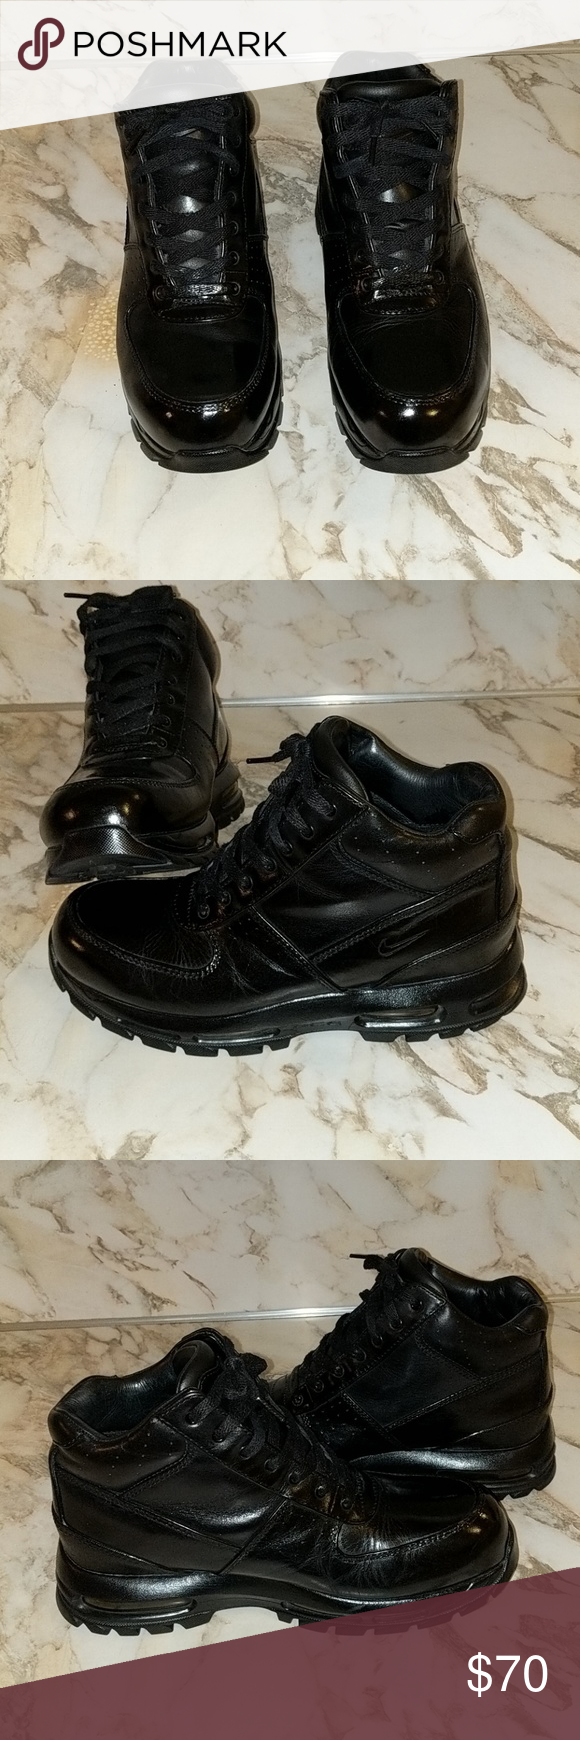 super popular 022be 23d42 Men s Nike Air Max Goadome Boots Size 10 Very nice ankle height nike air max  acg non steel toe boots,full length air sole. Very well tooken care of will  new ...